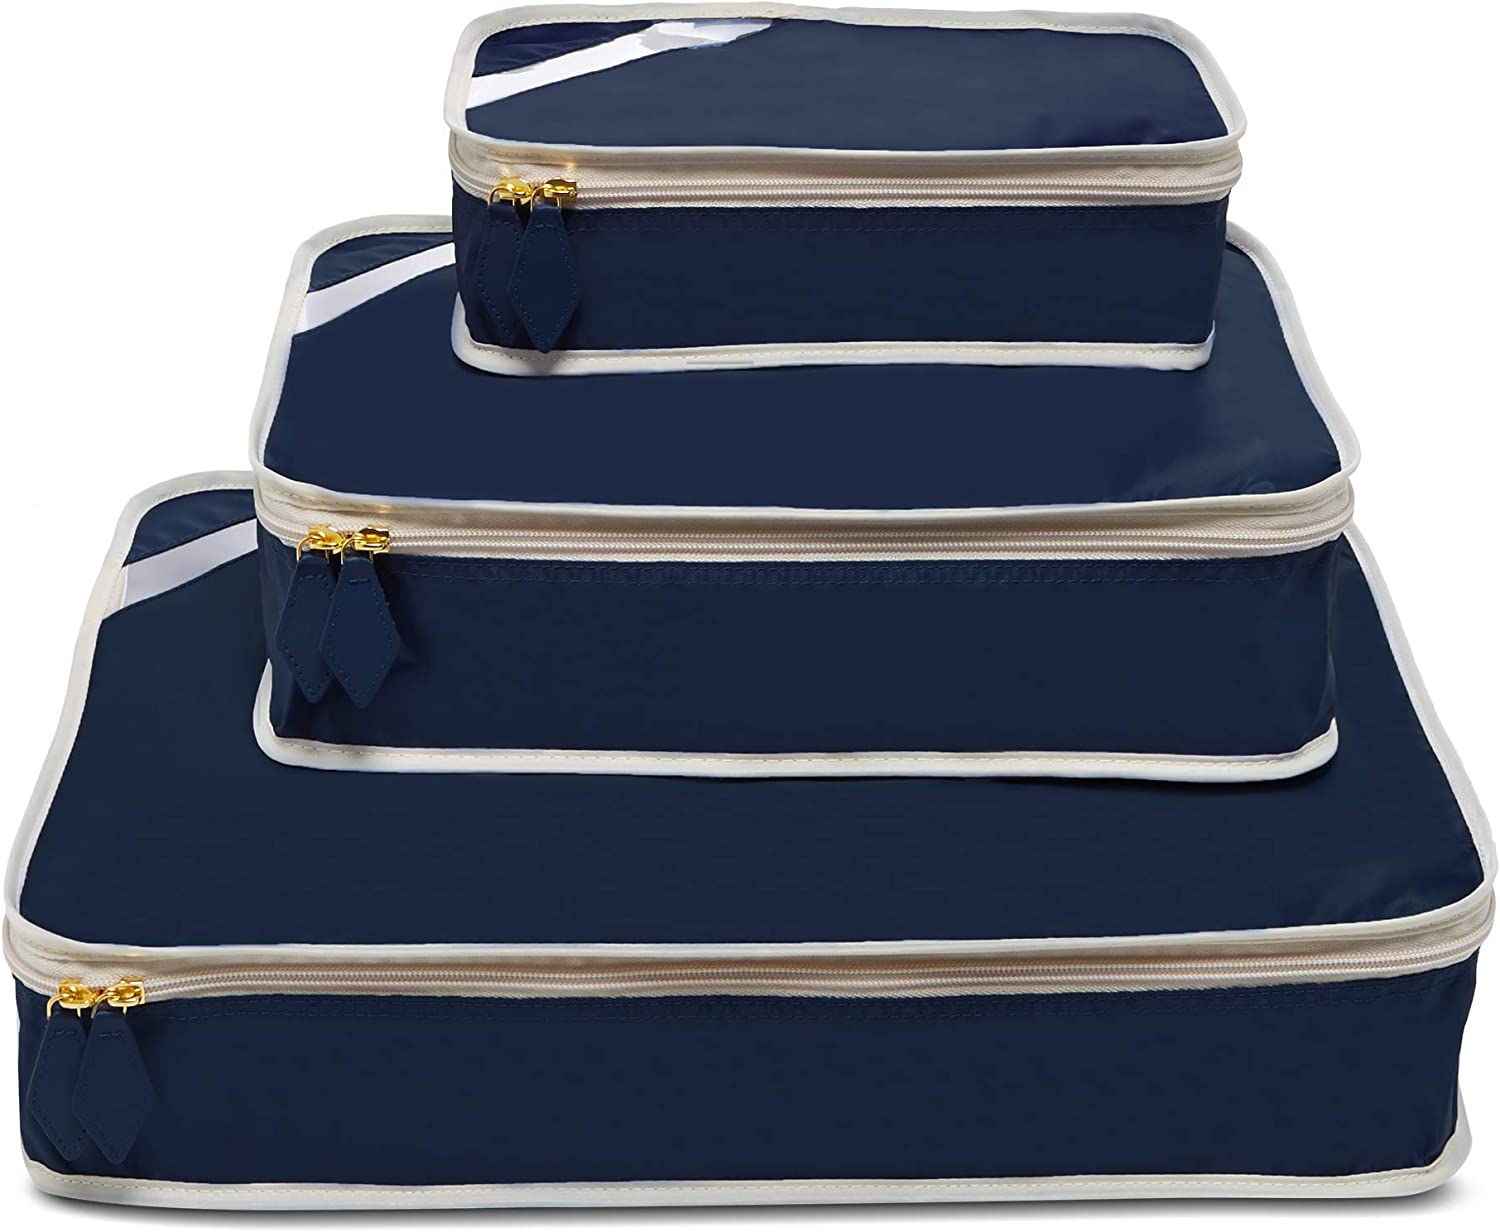 Paravel Travel Packing Cubes | Set of 3 | Scuba Navy | Luggage Bag Organizers for Travel Accessories, Shoes, Toiletries, Laundry, Compression Storage Cubes | Various Sizes